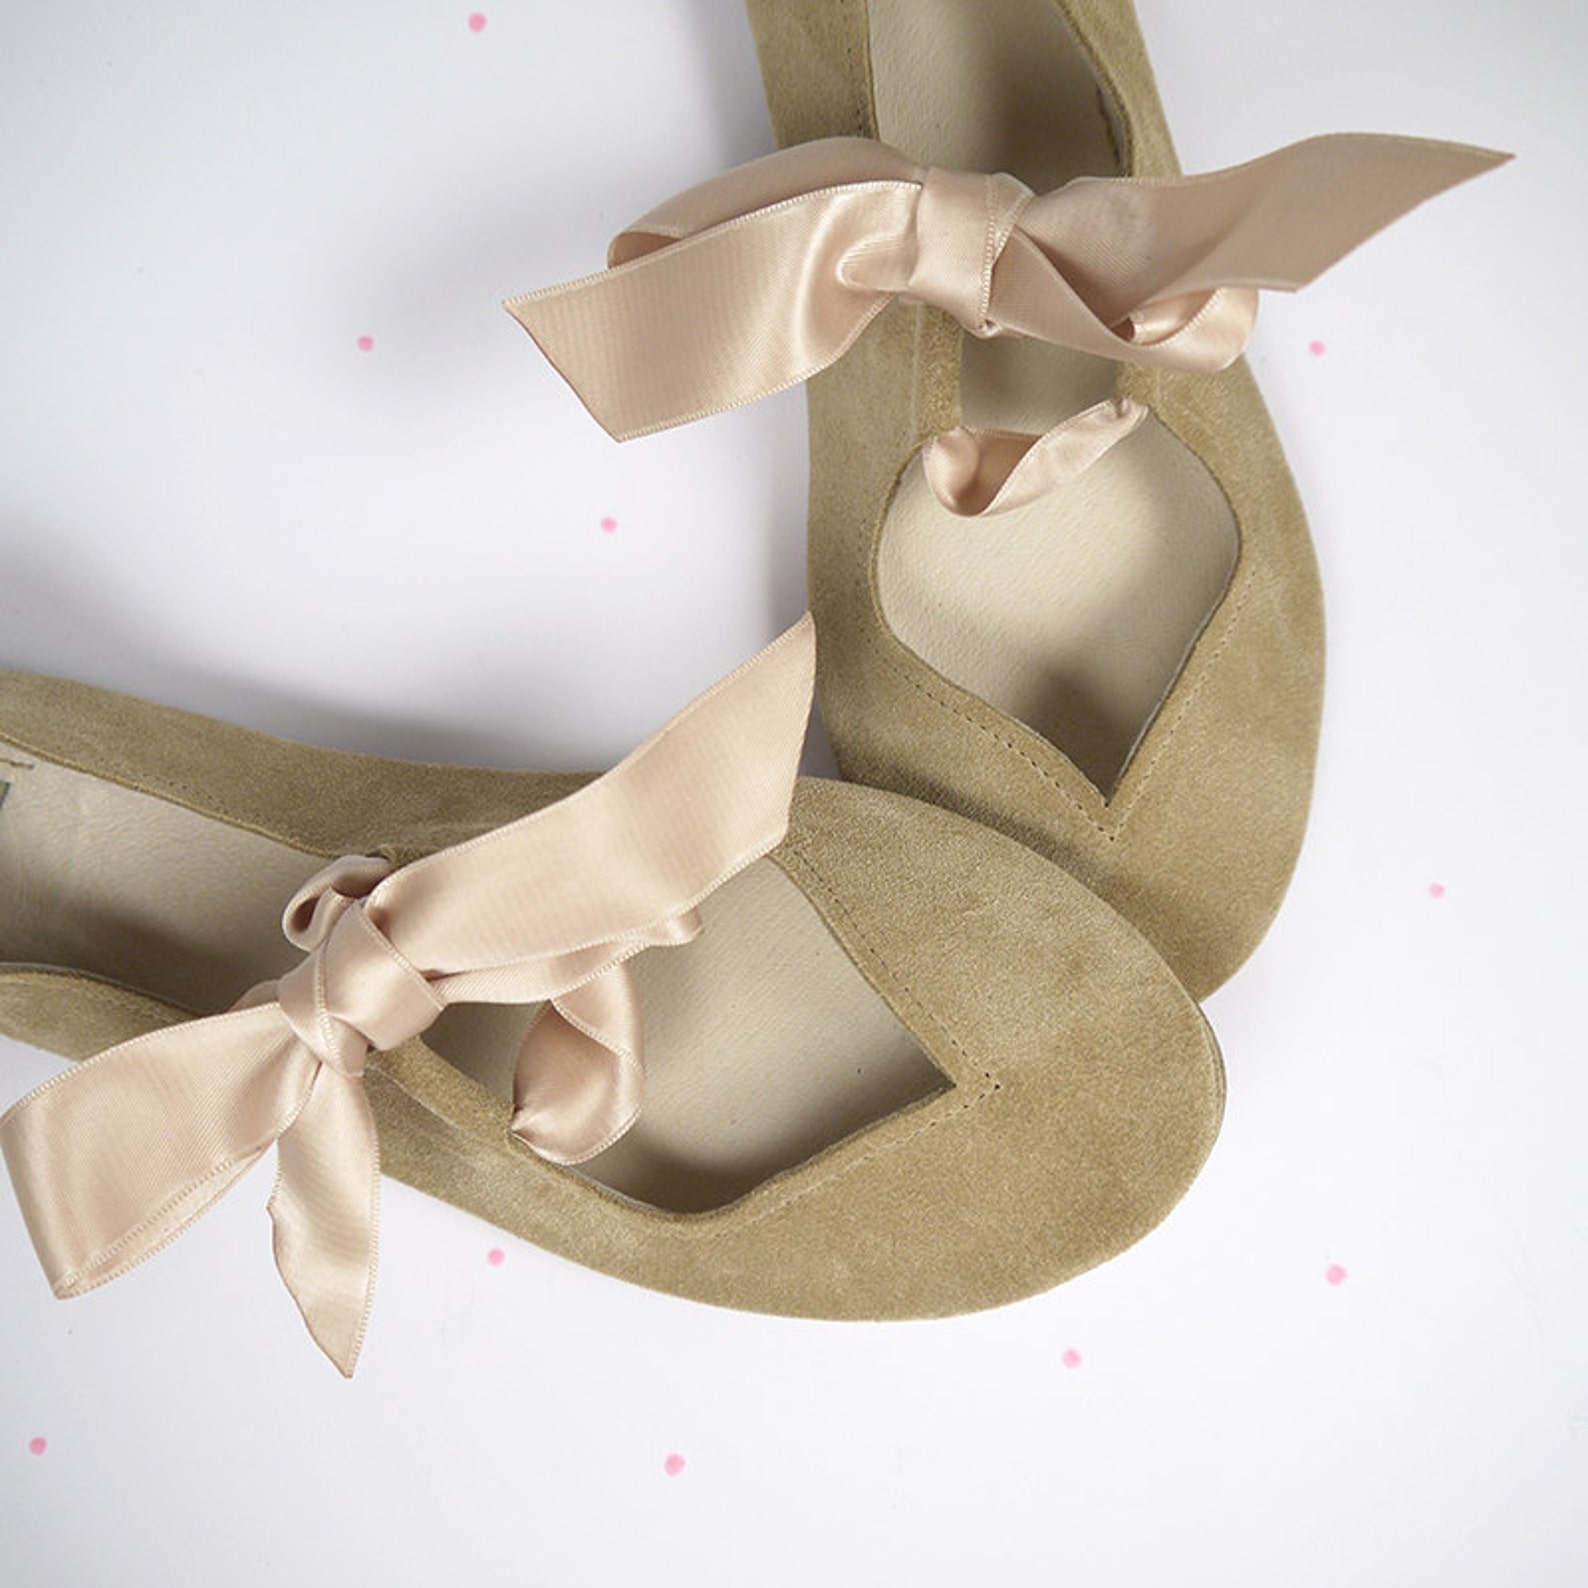 shoes on sale, 20% off, size 39, ready to ship, soft sand handmade mary jane with satin ribbons ballet flats, elehandmade shoes